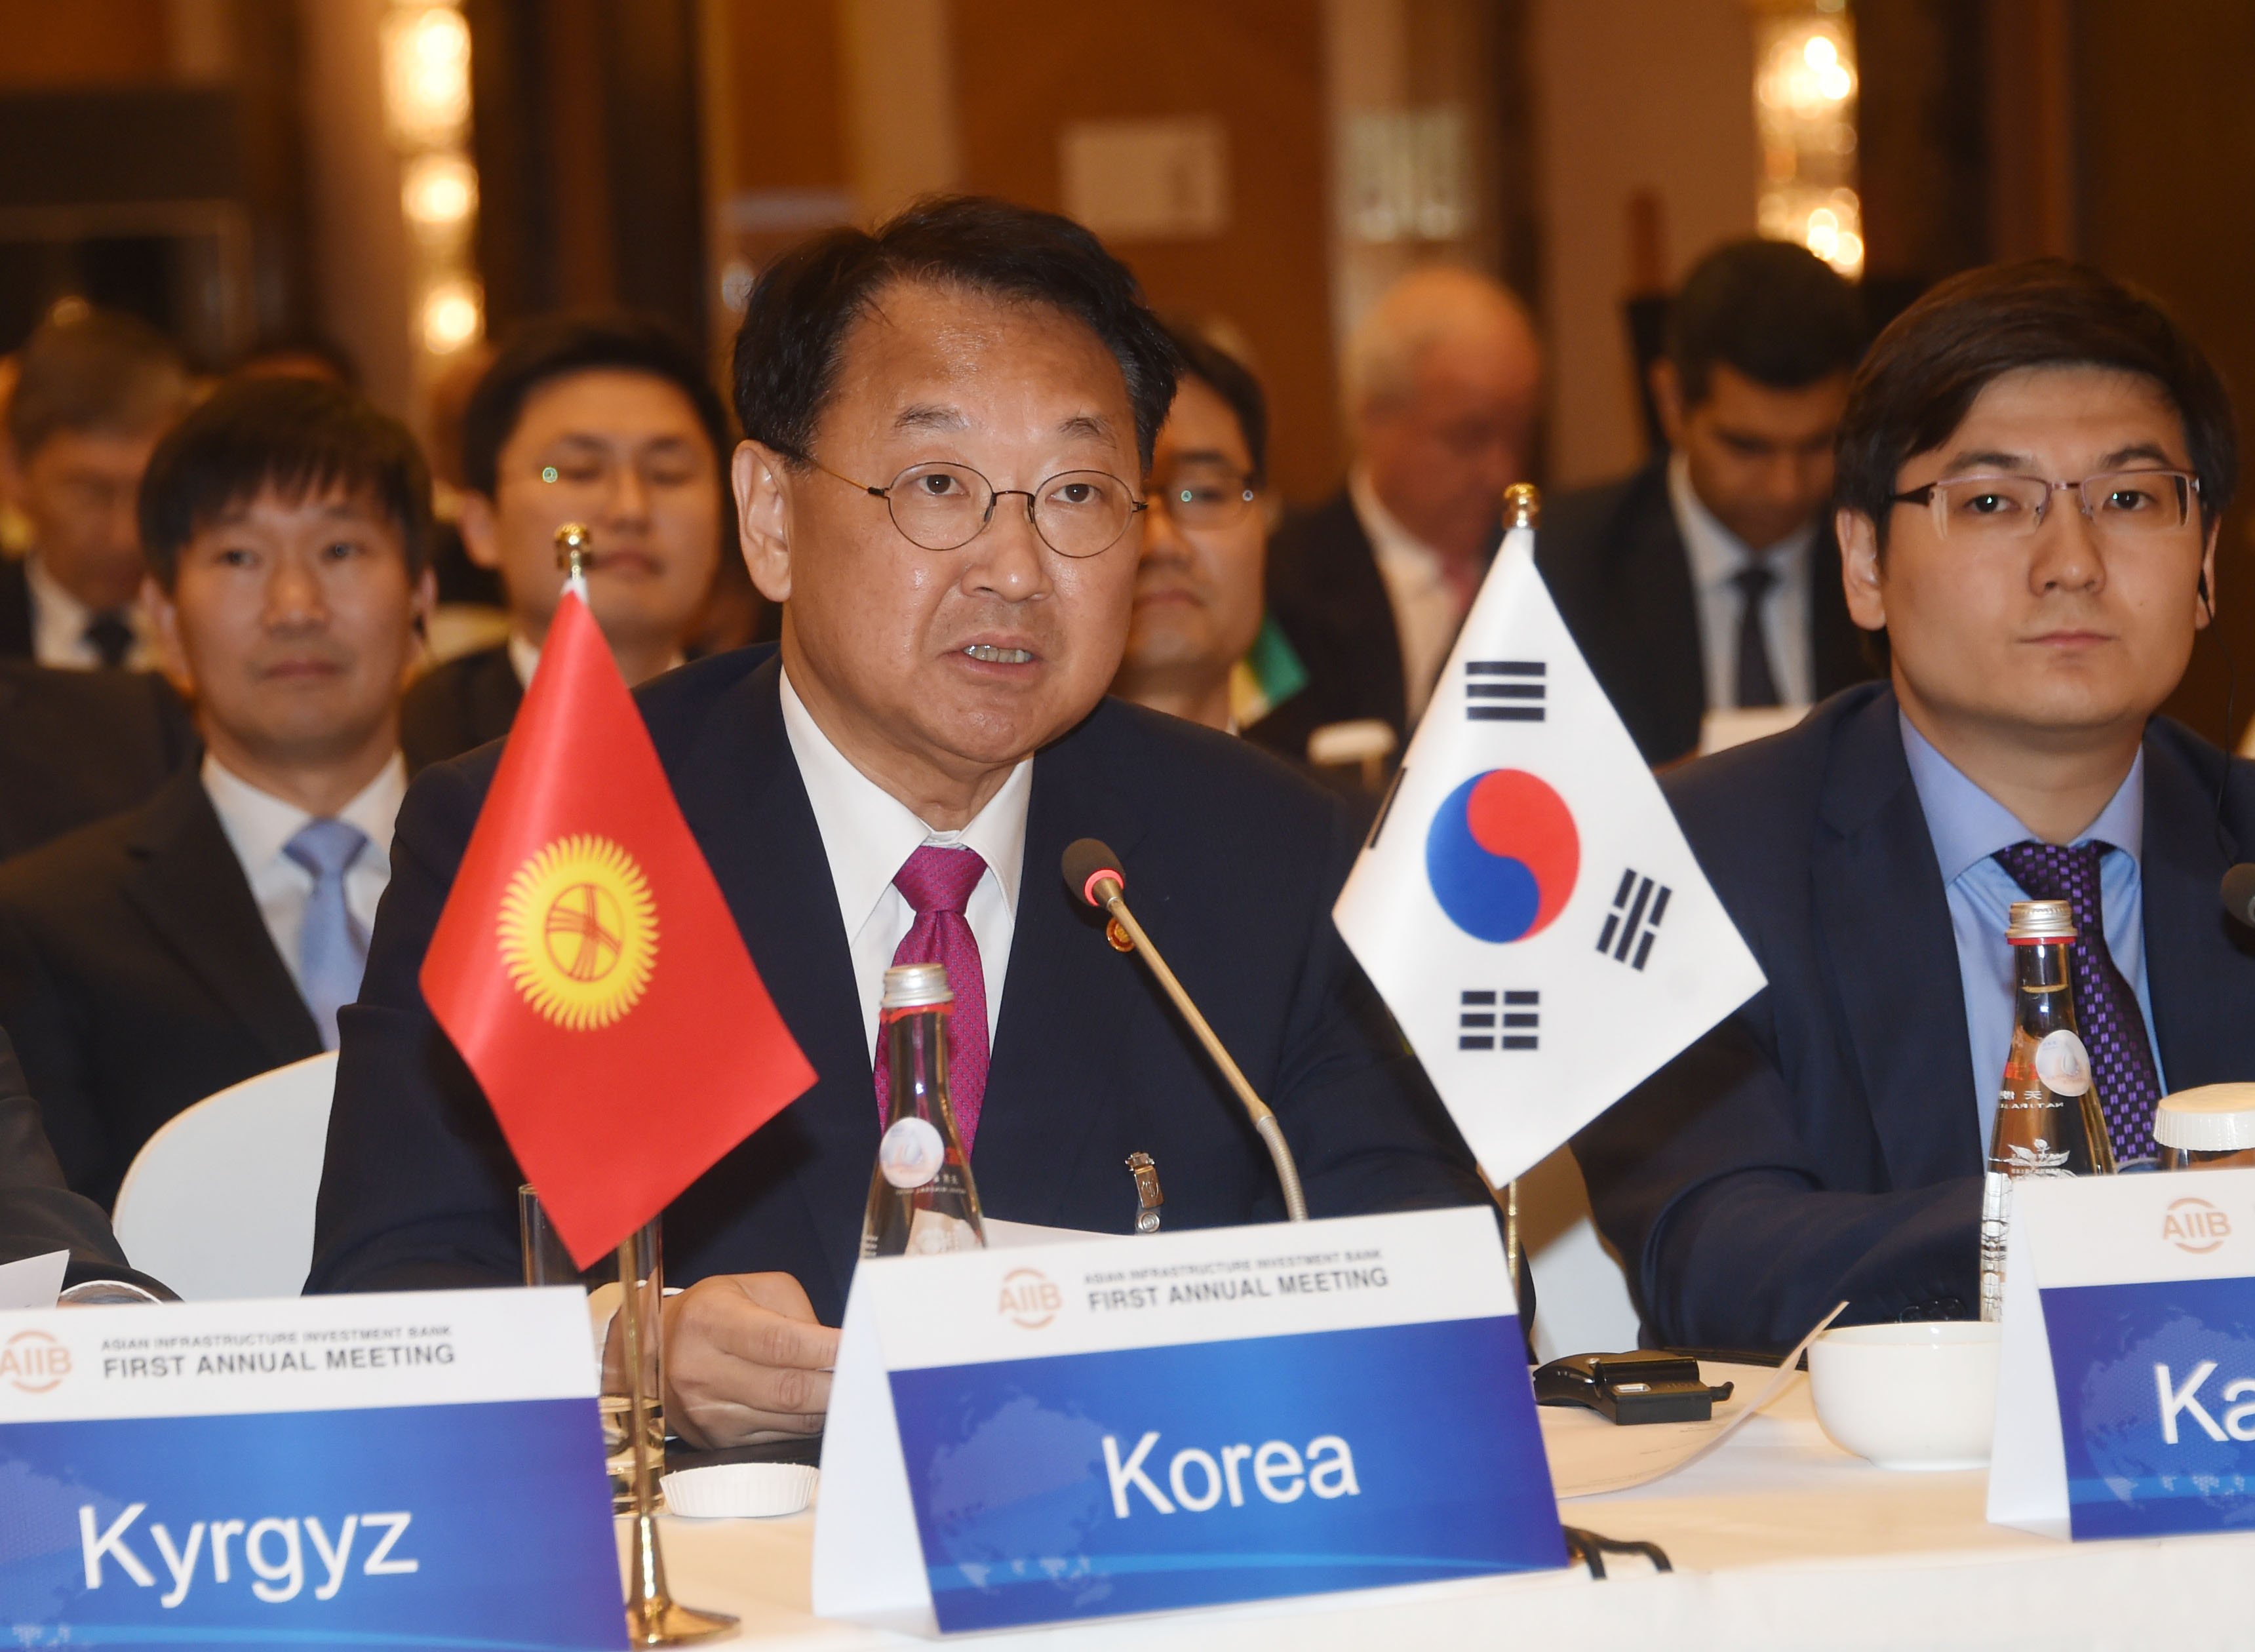 Deputy Prime Minister Yoo attends the first AIIB Annual Meeting in Beijing